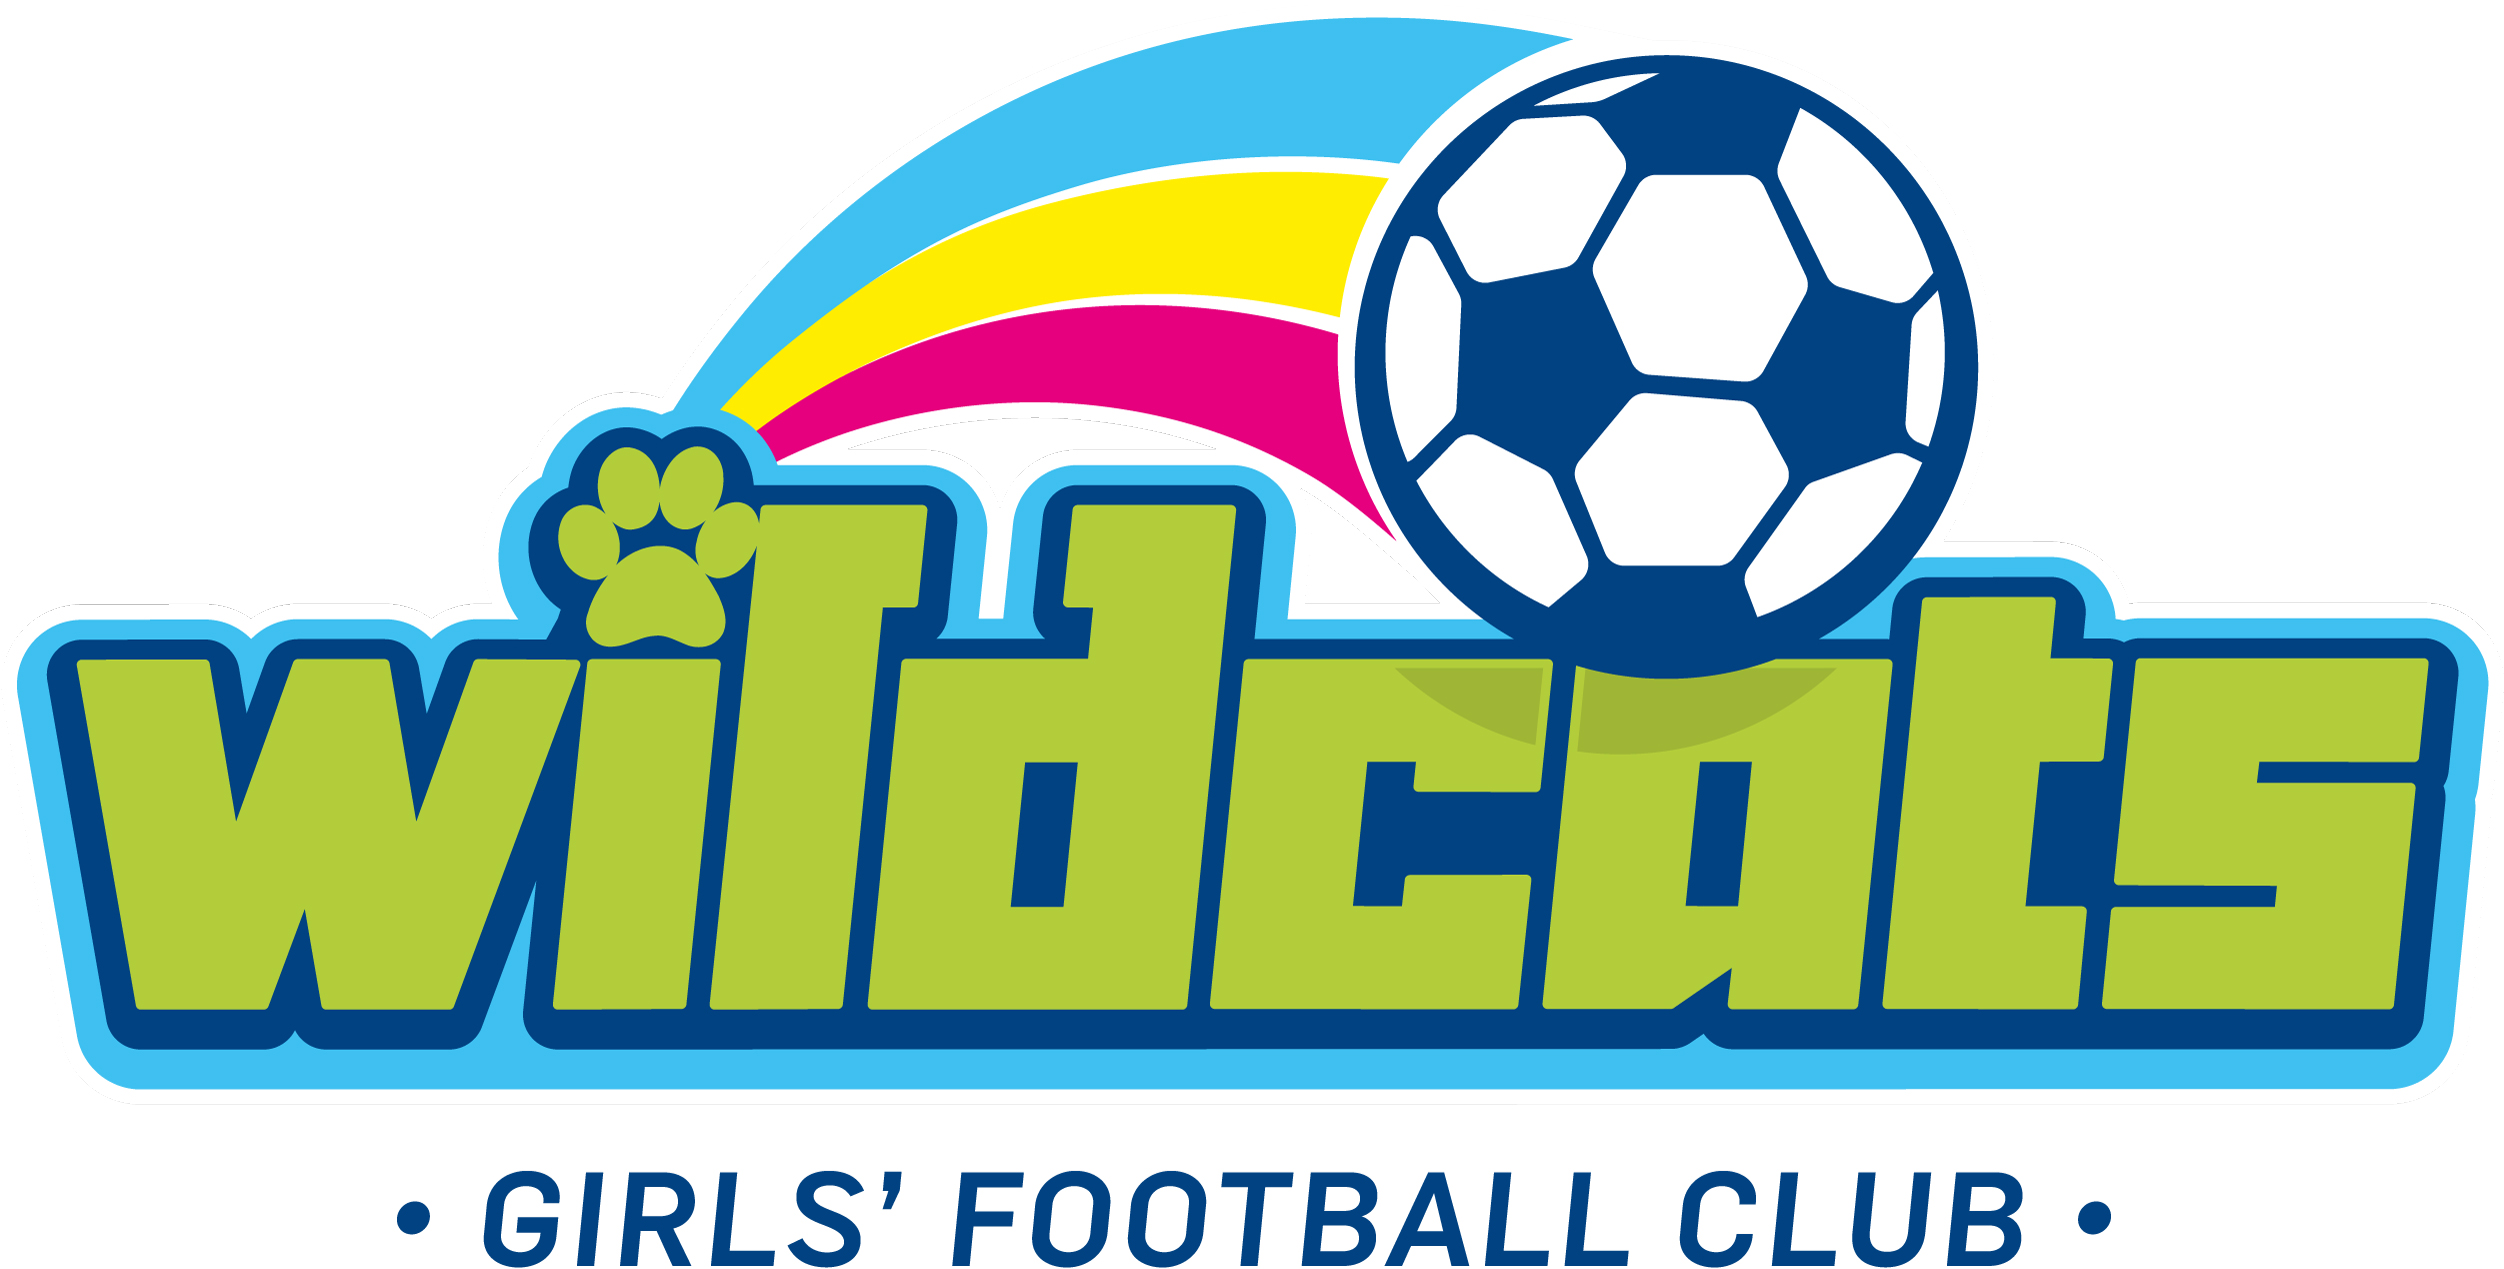 The FA Wildcats logo